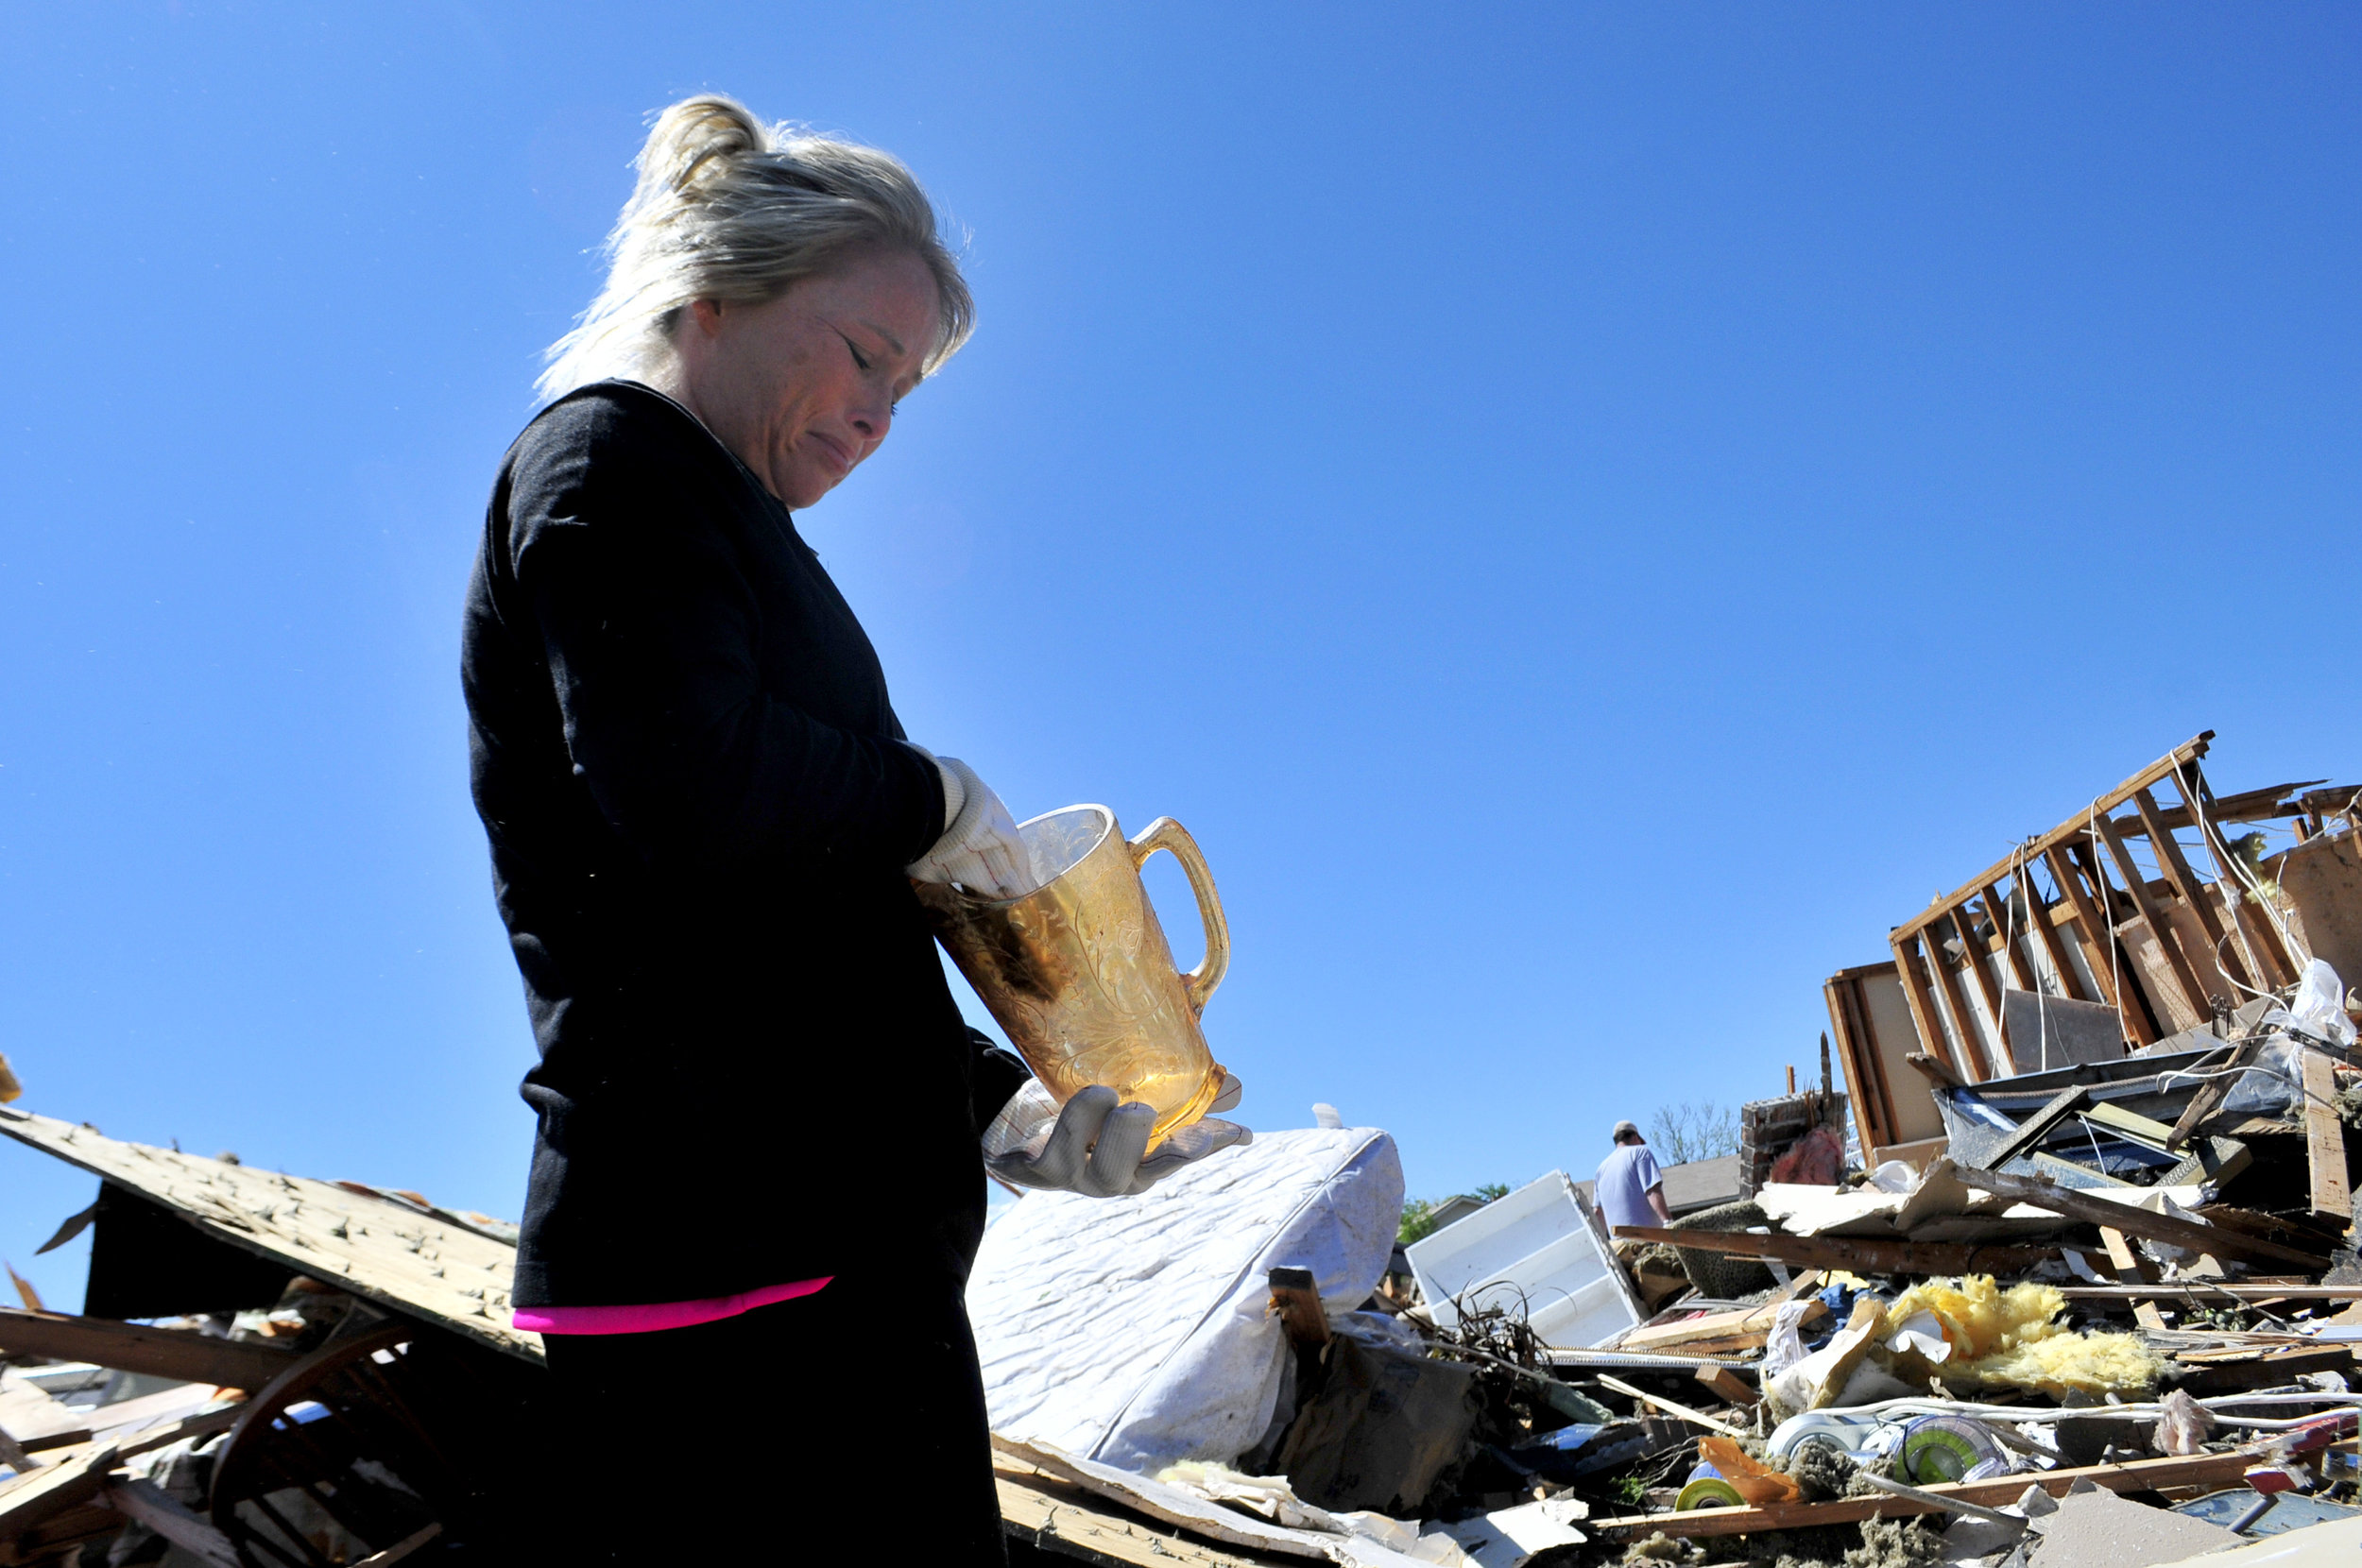 Emilee Neagle got emotional after finding her grandmothers pitcher in what was left behind of her home that was destroyed by a tornado that ripped through Woodward Oklahoma early Sunday morning.